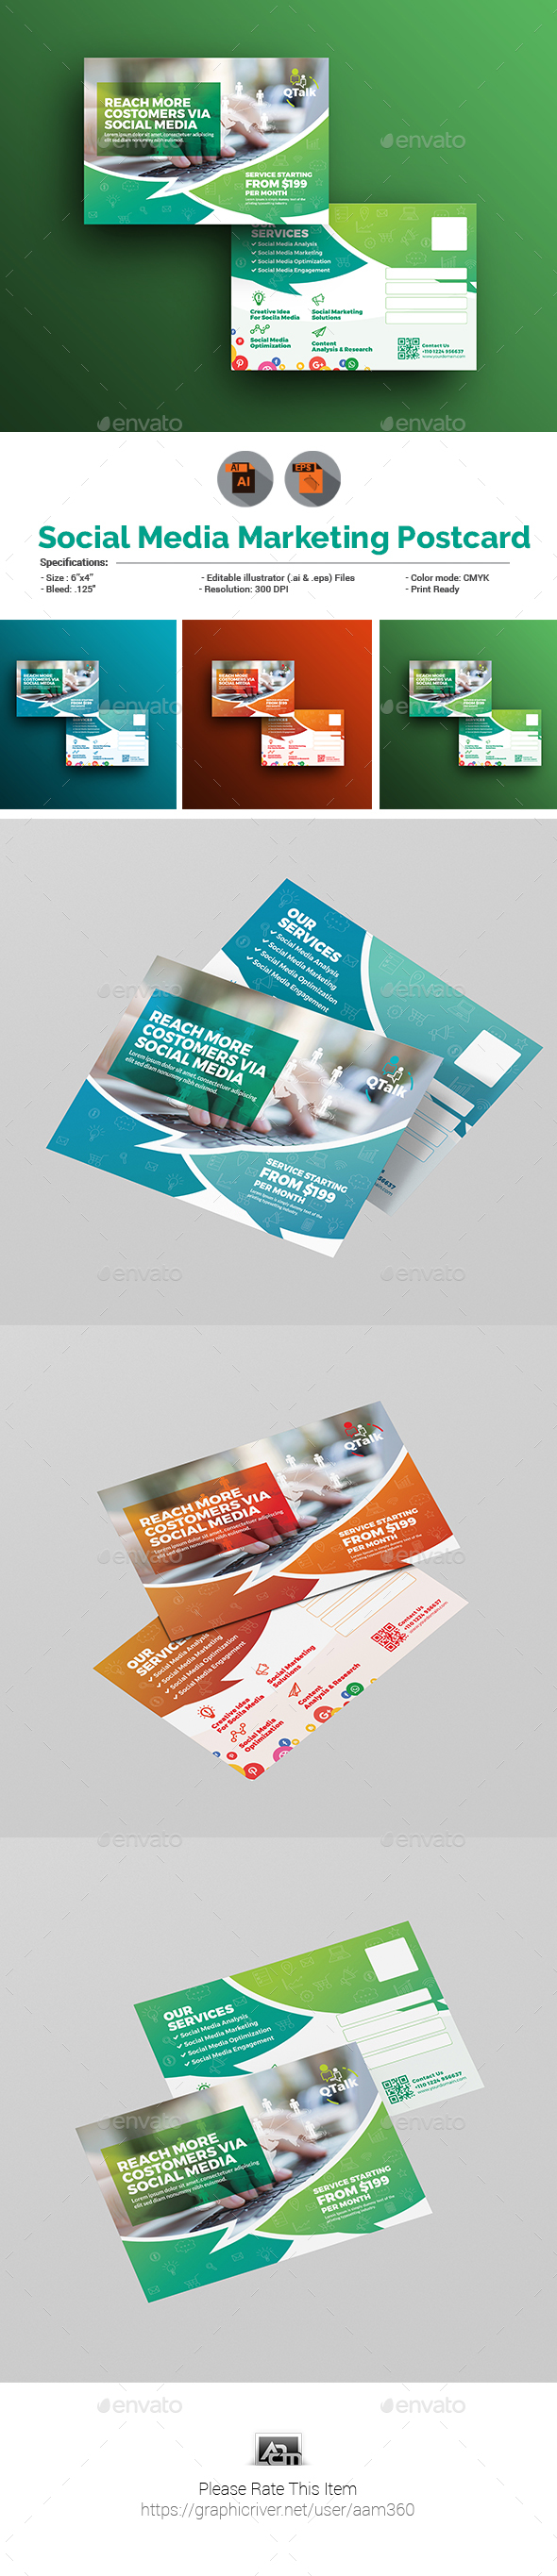 Social Media Marketing Postcard Template - Cards & Invites Print Templates